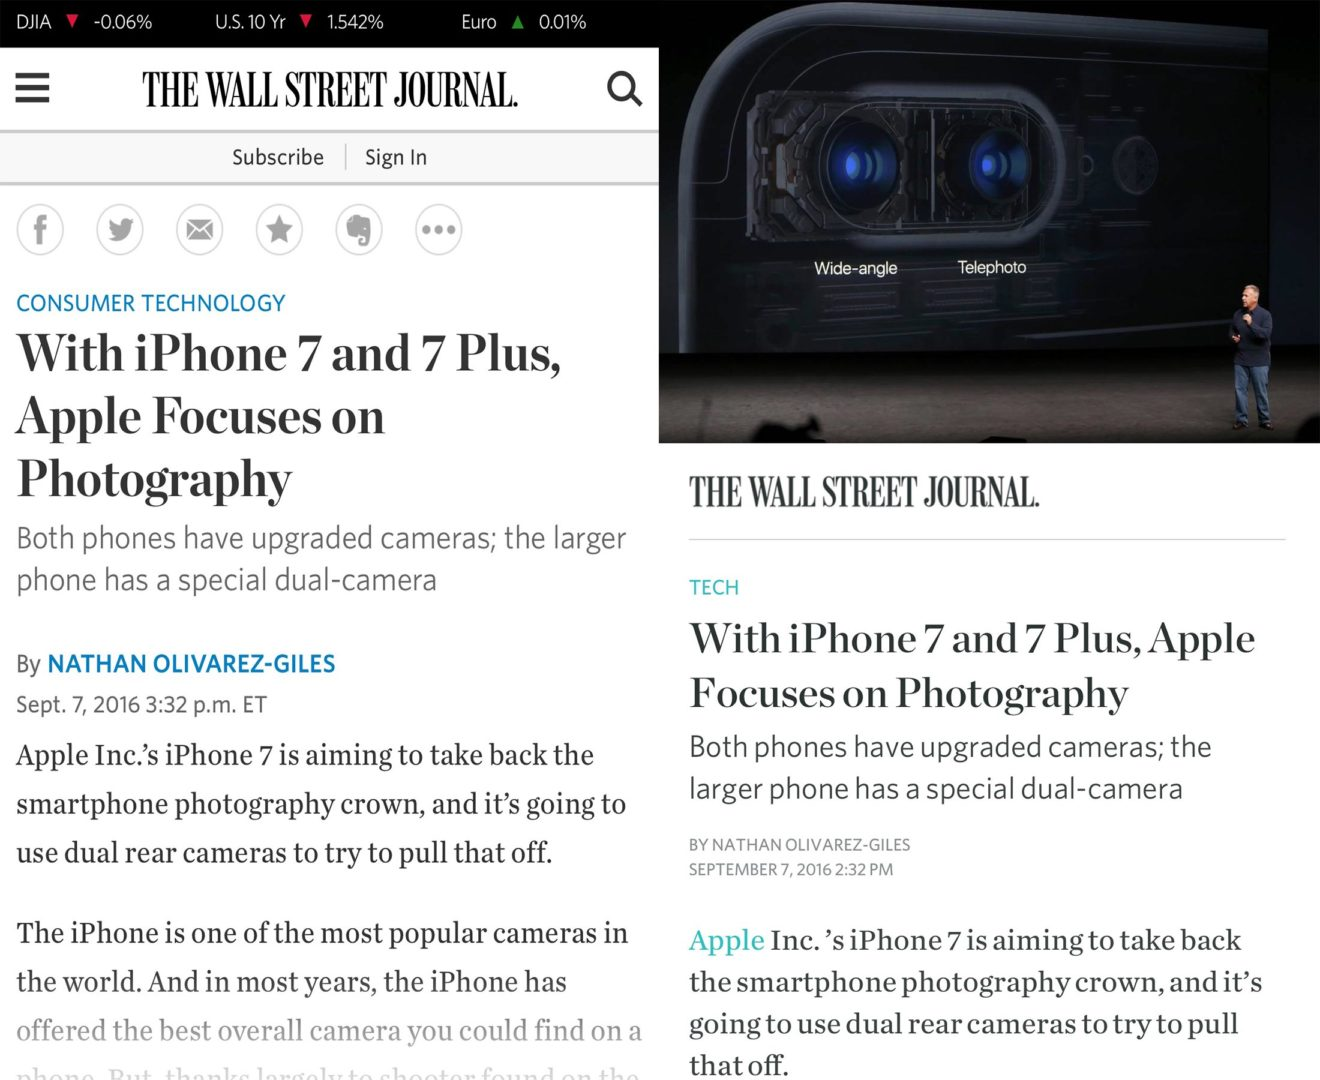 Comparing AMP to traditional mobile web with The Wall Street Journal.